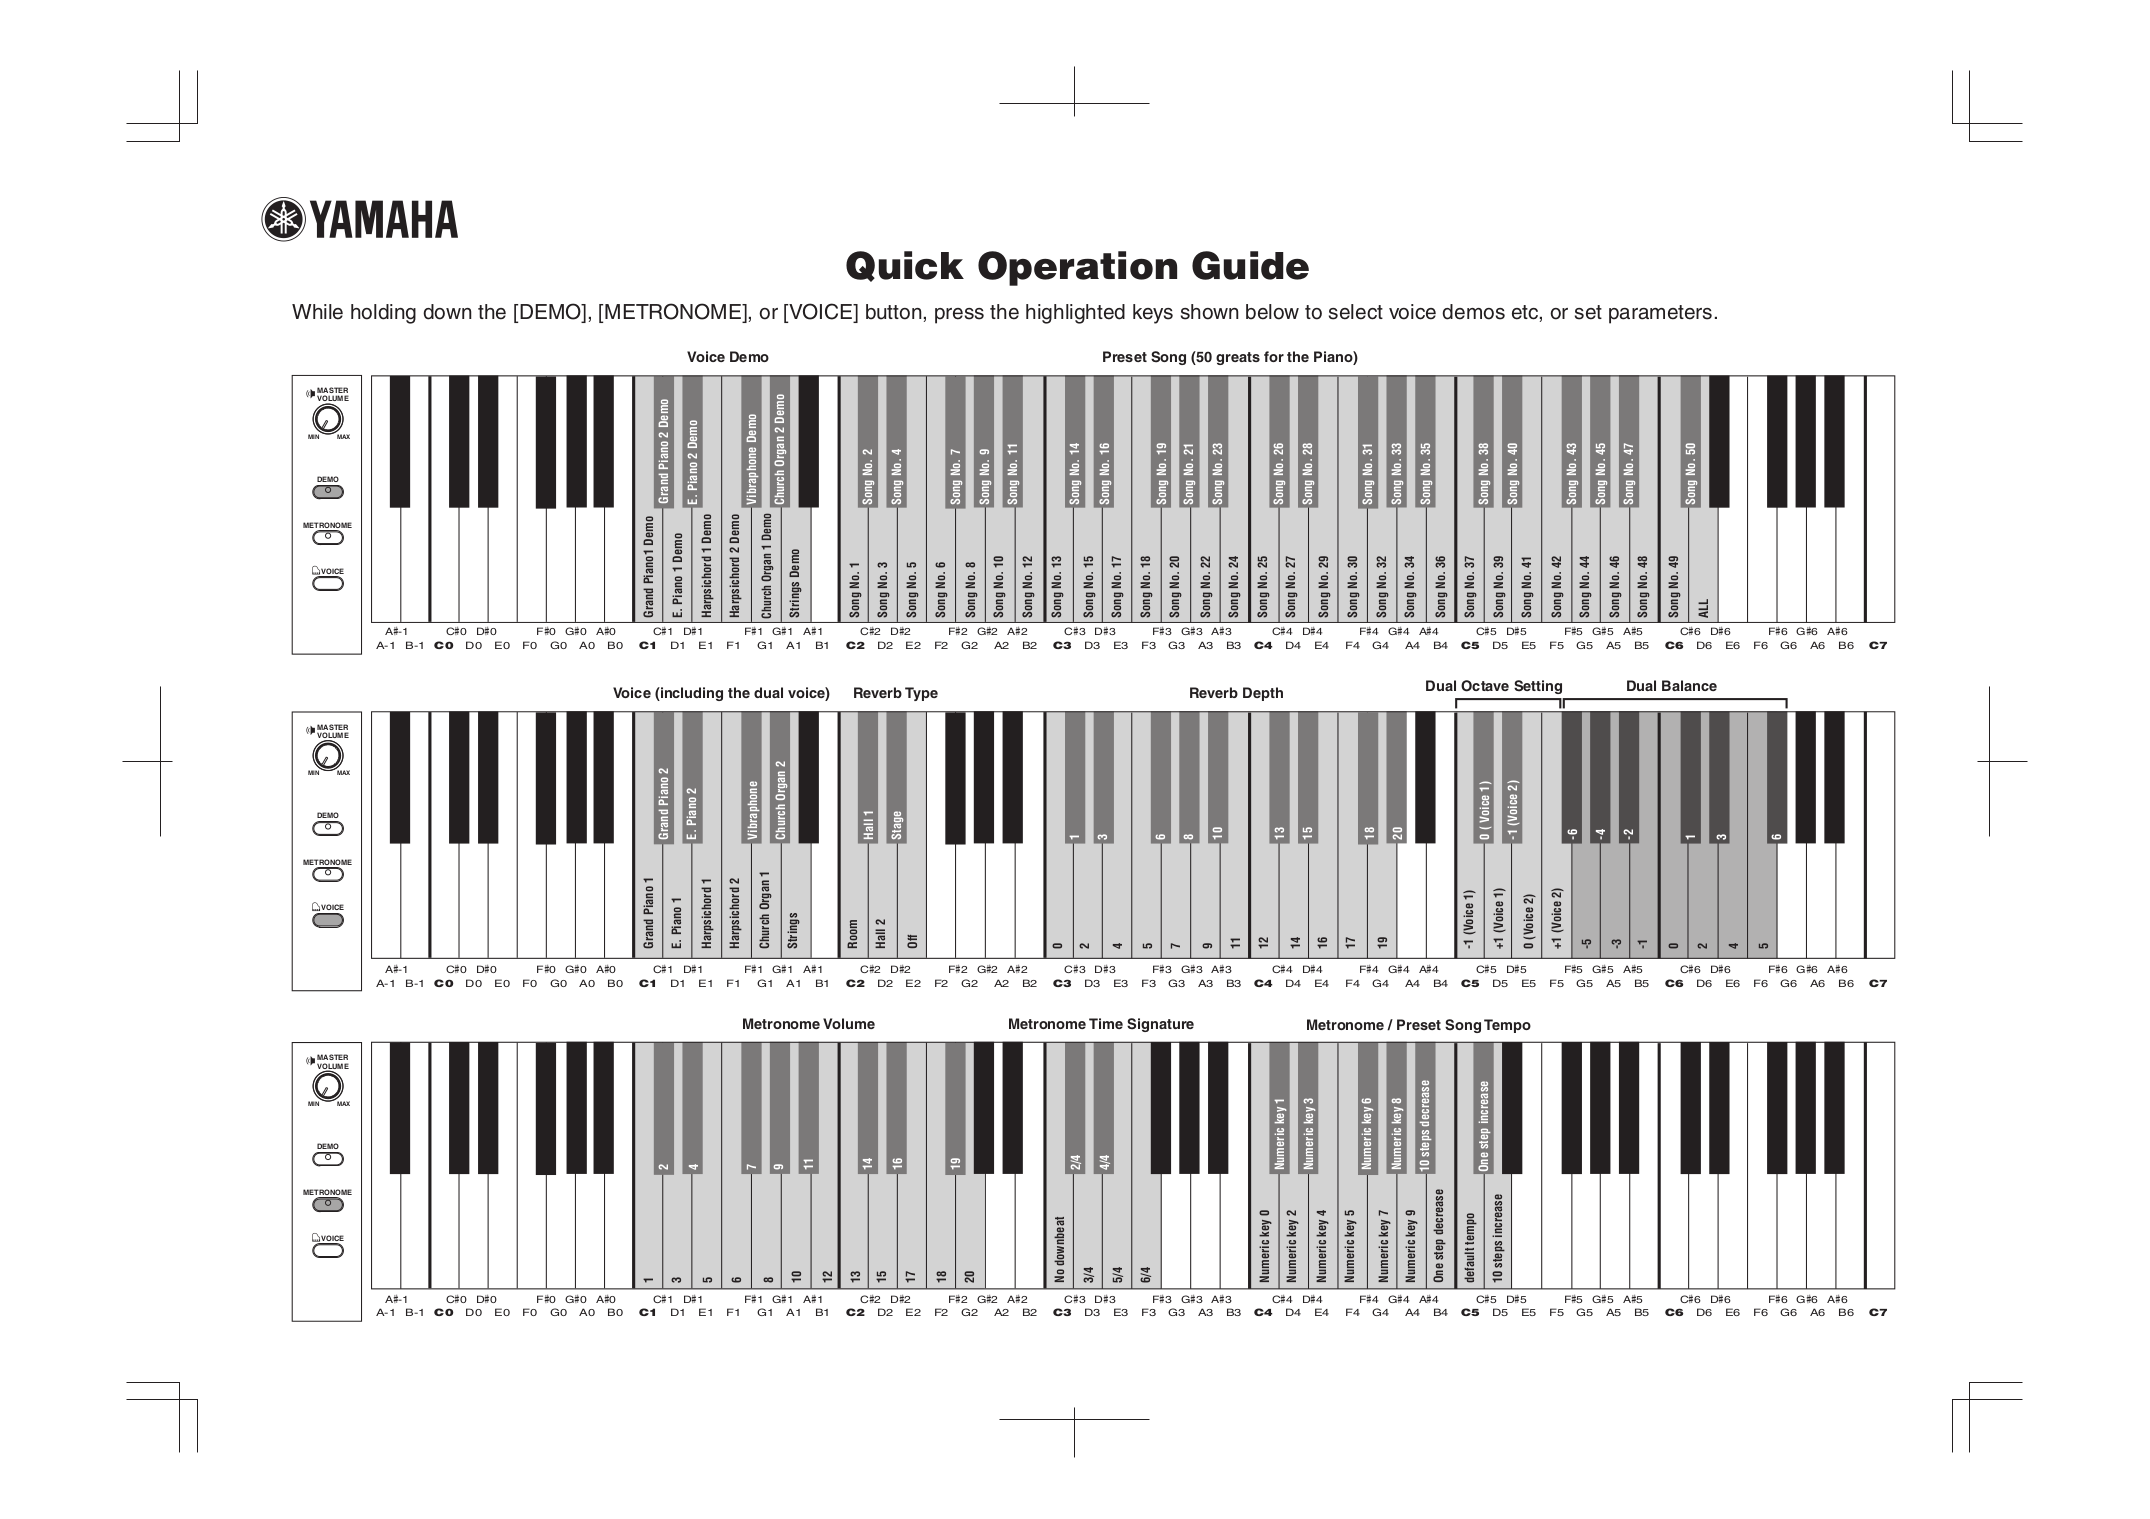 Download free pdf for Yamaha CLP-115 Music Keyboard manual